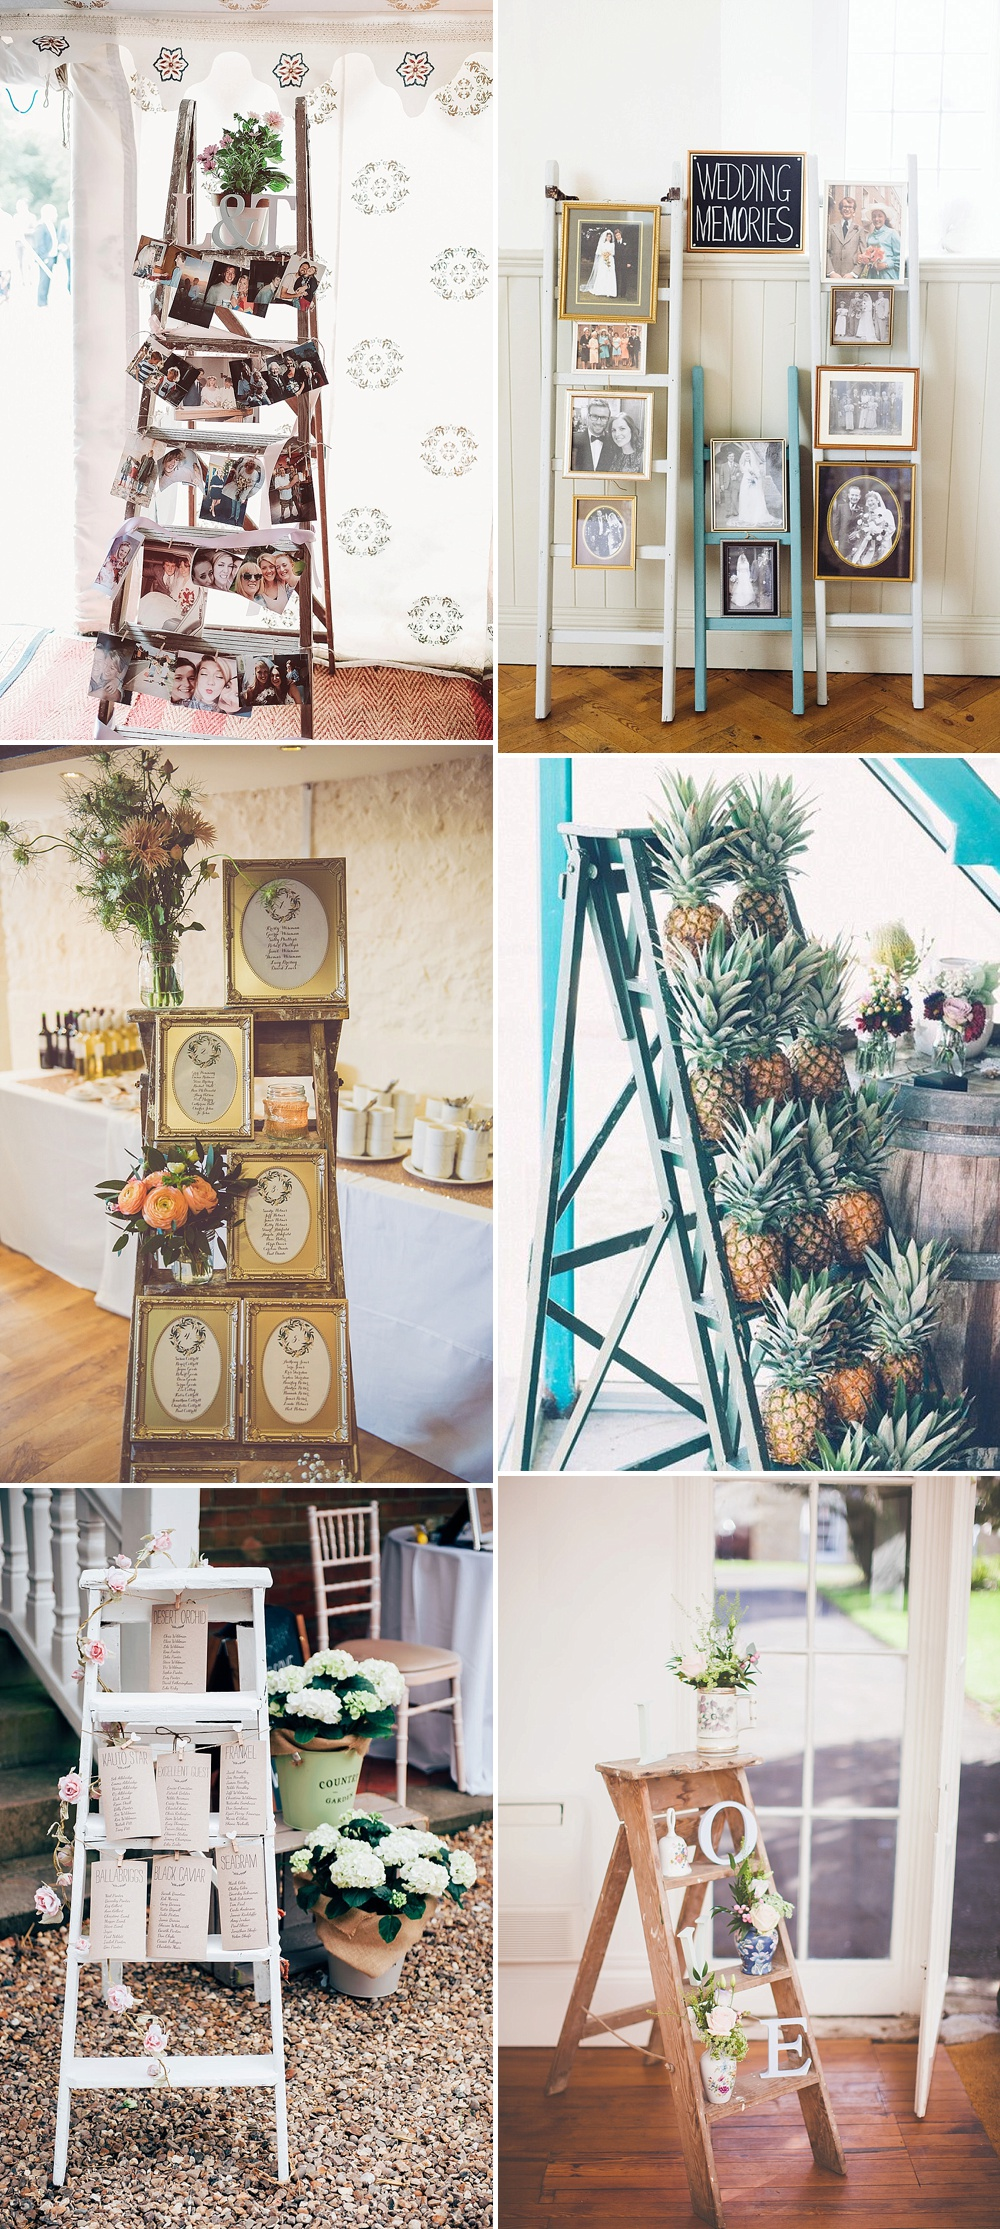 Wedding Decor & Styling Ladders How To Personalise Your Wedding Decor